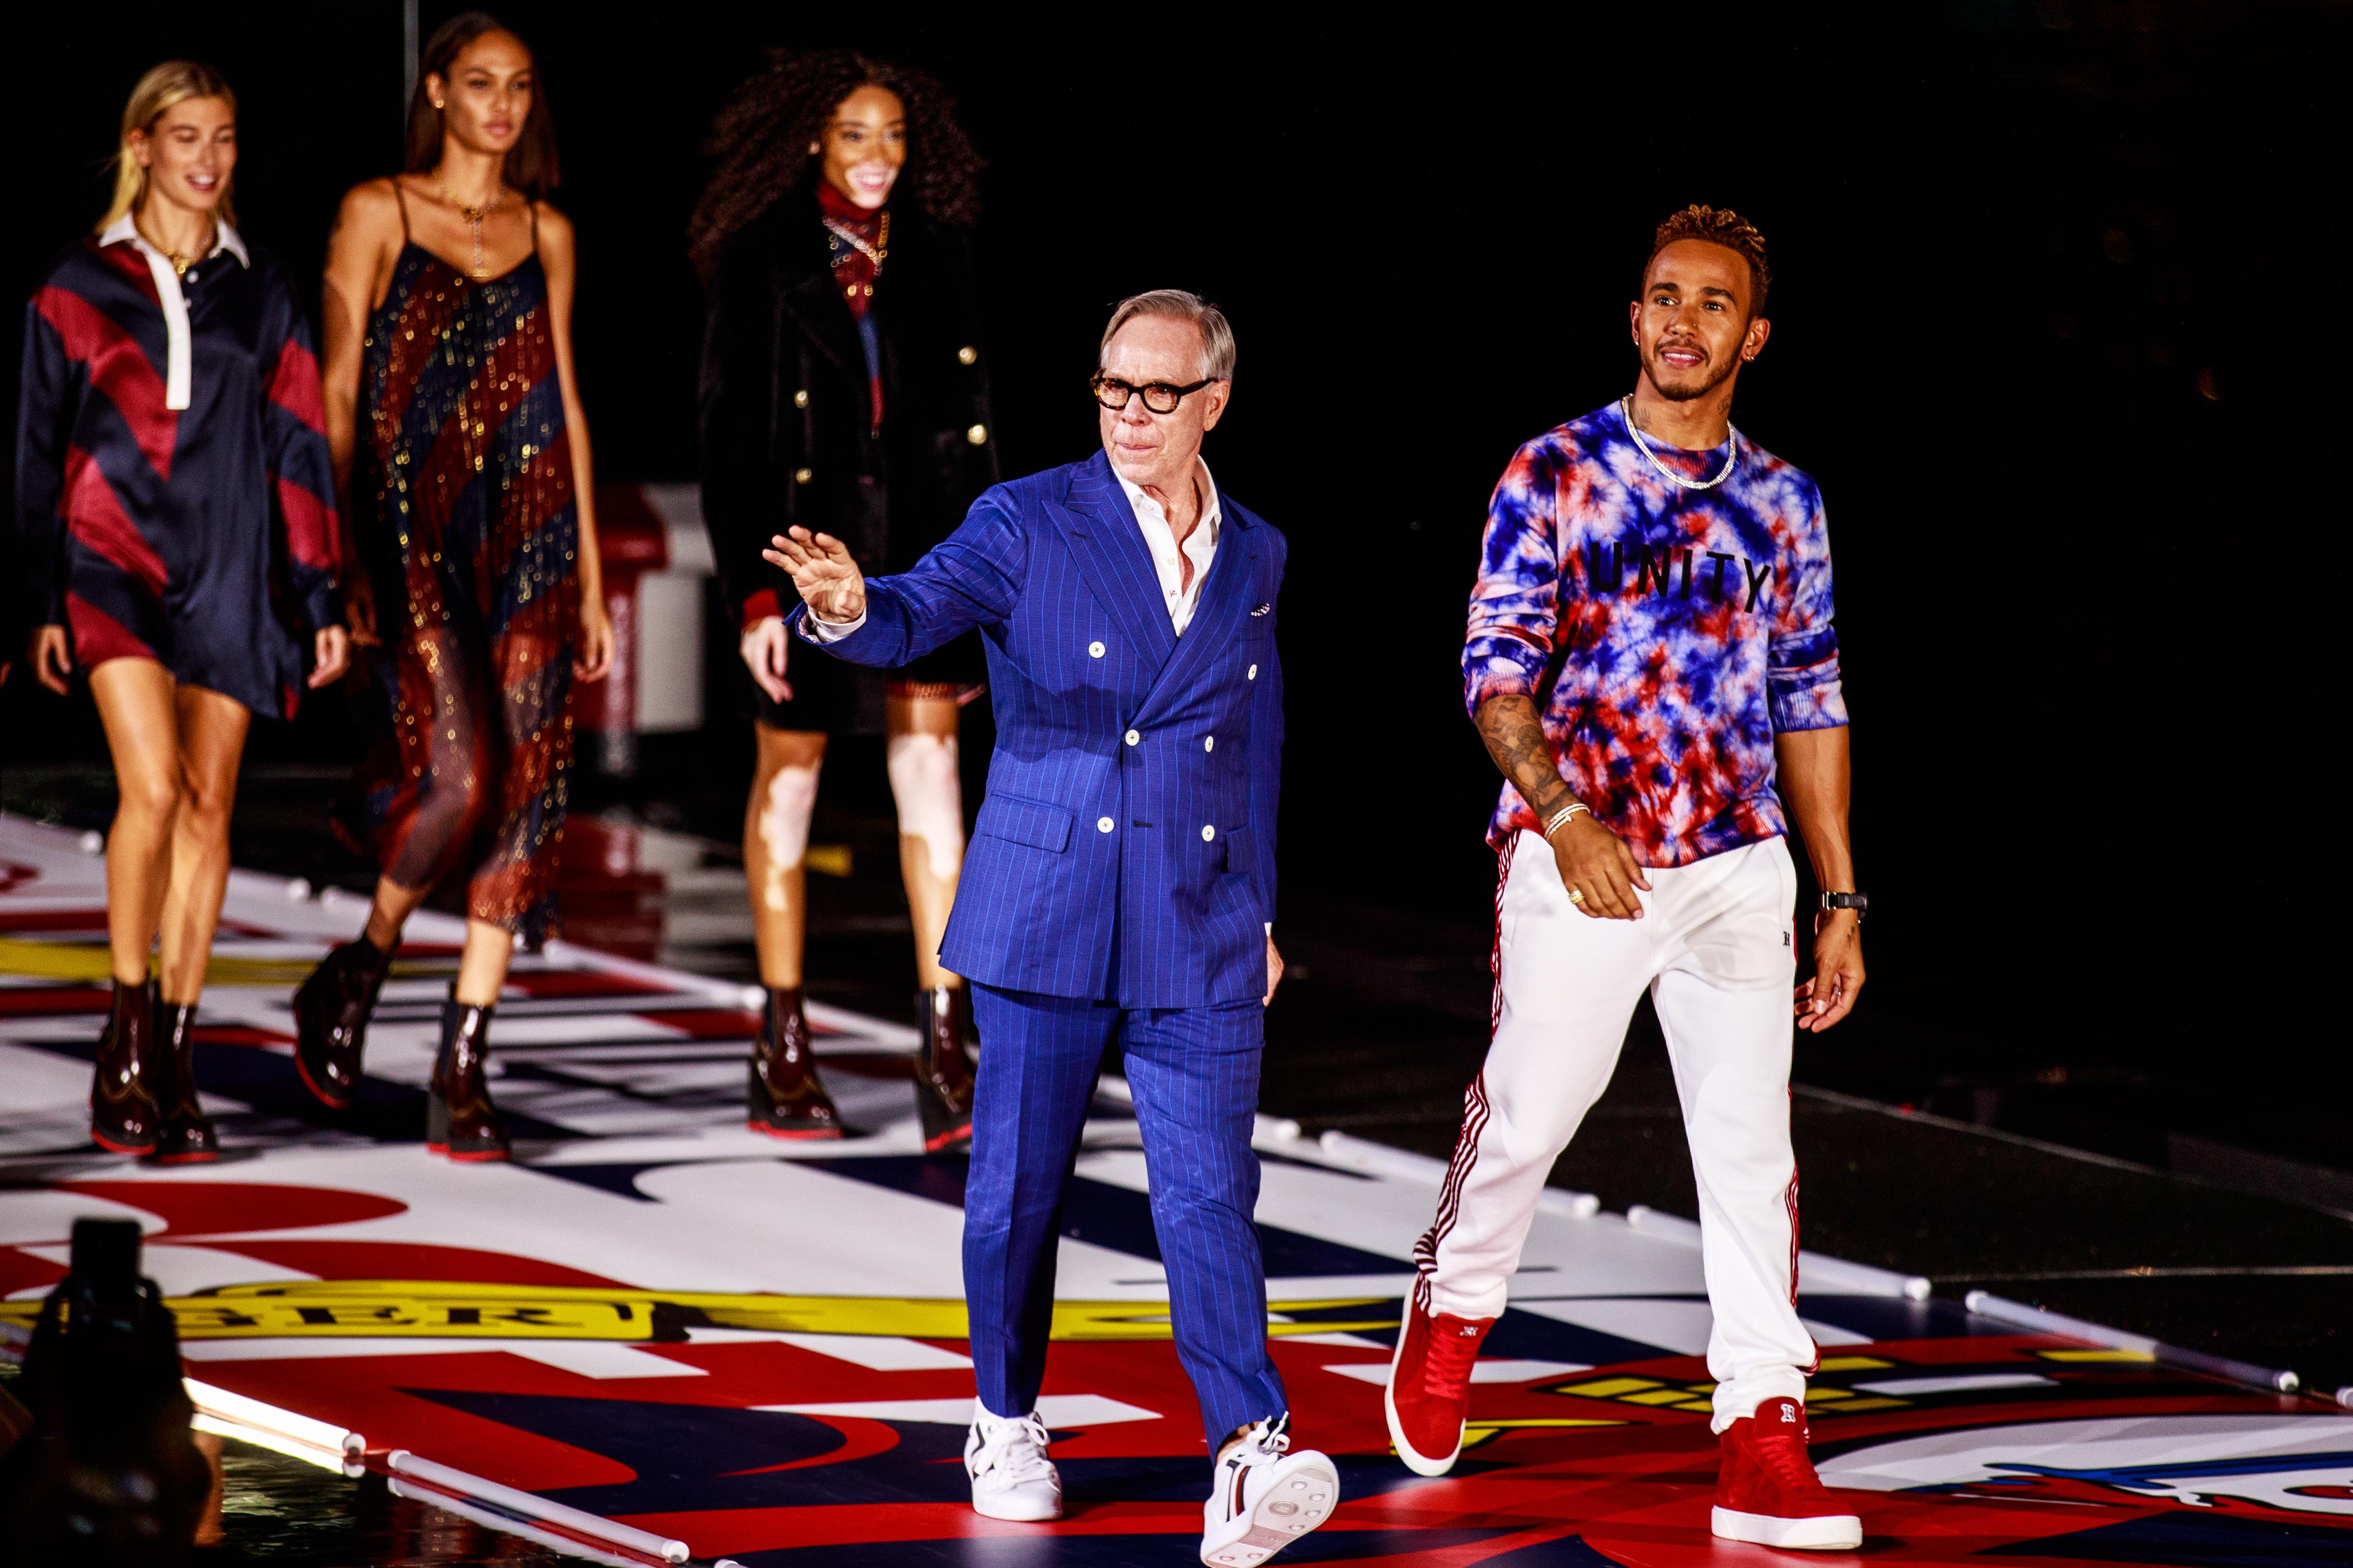 Lewis Hamilton hit the catwalk in Shanghai with Tommy Hilfiger last week